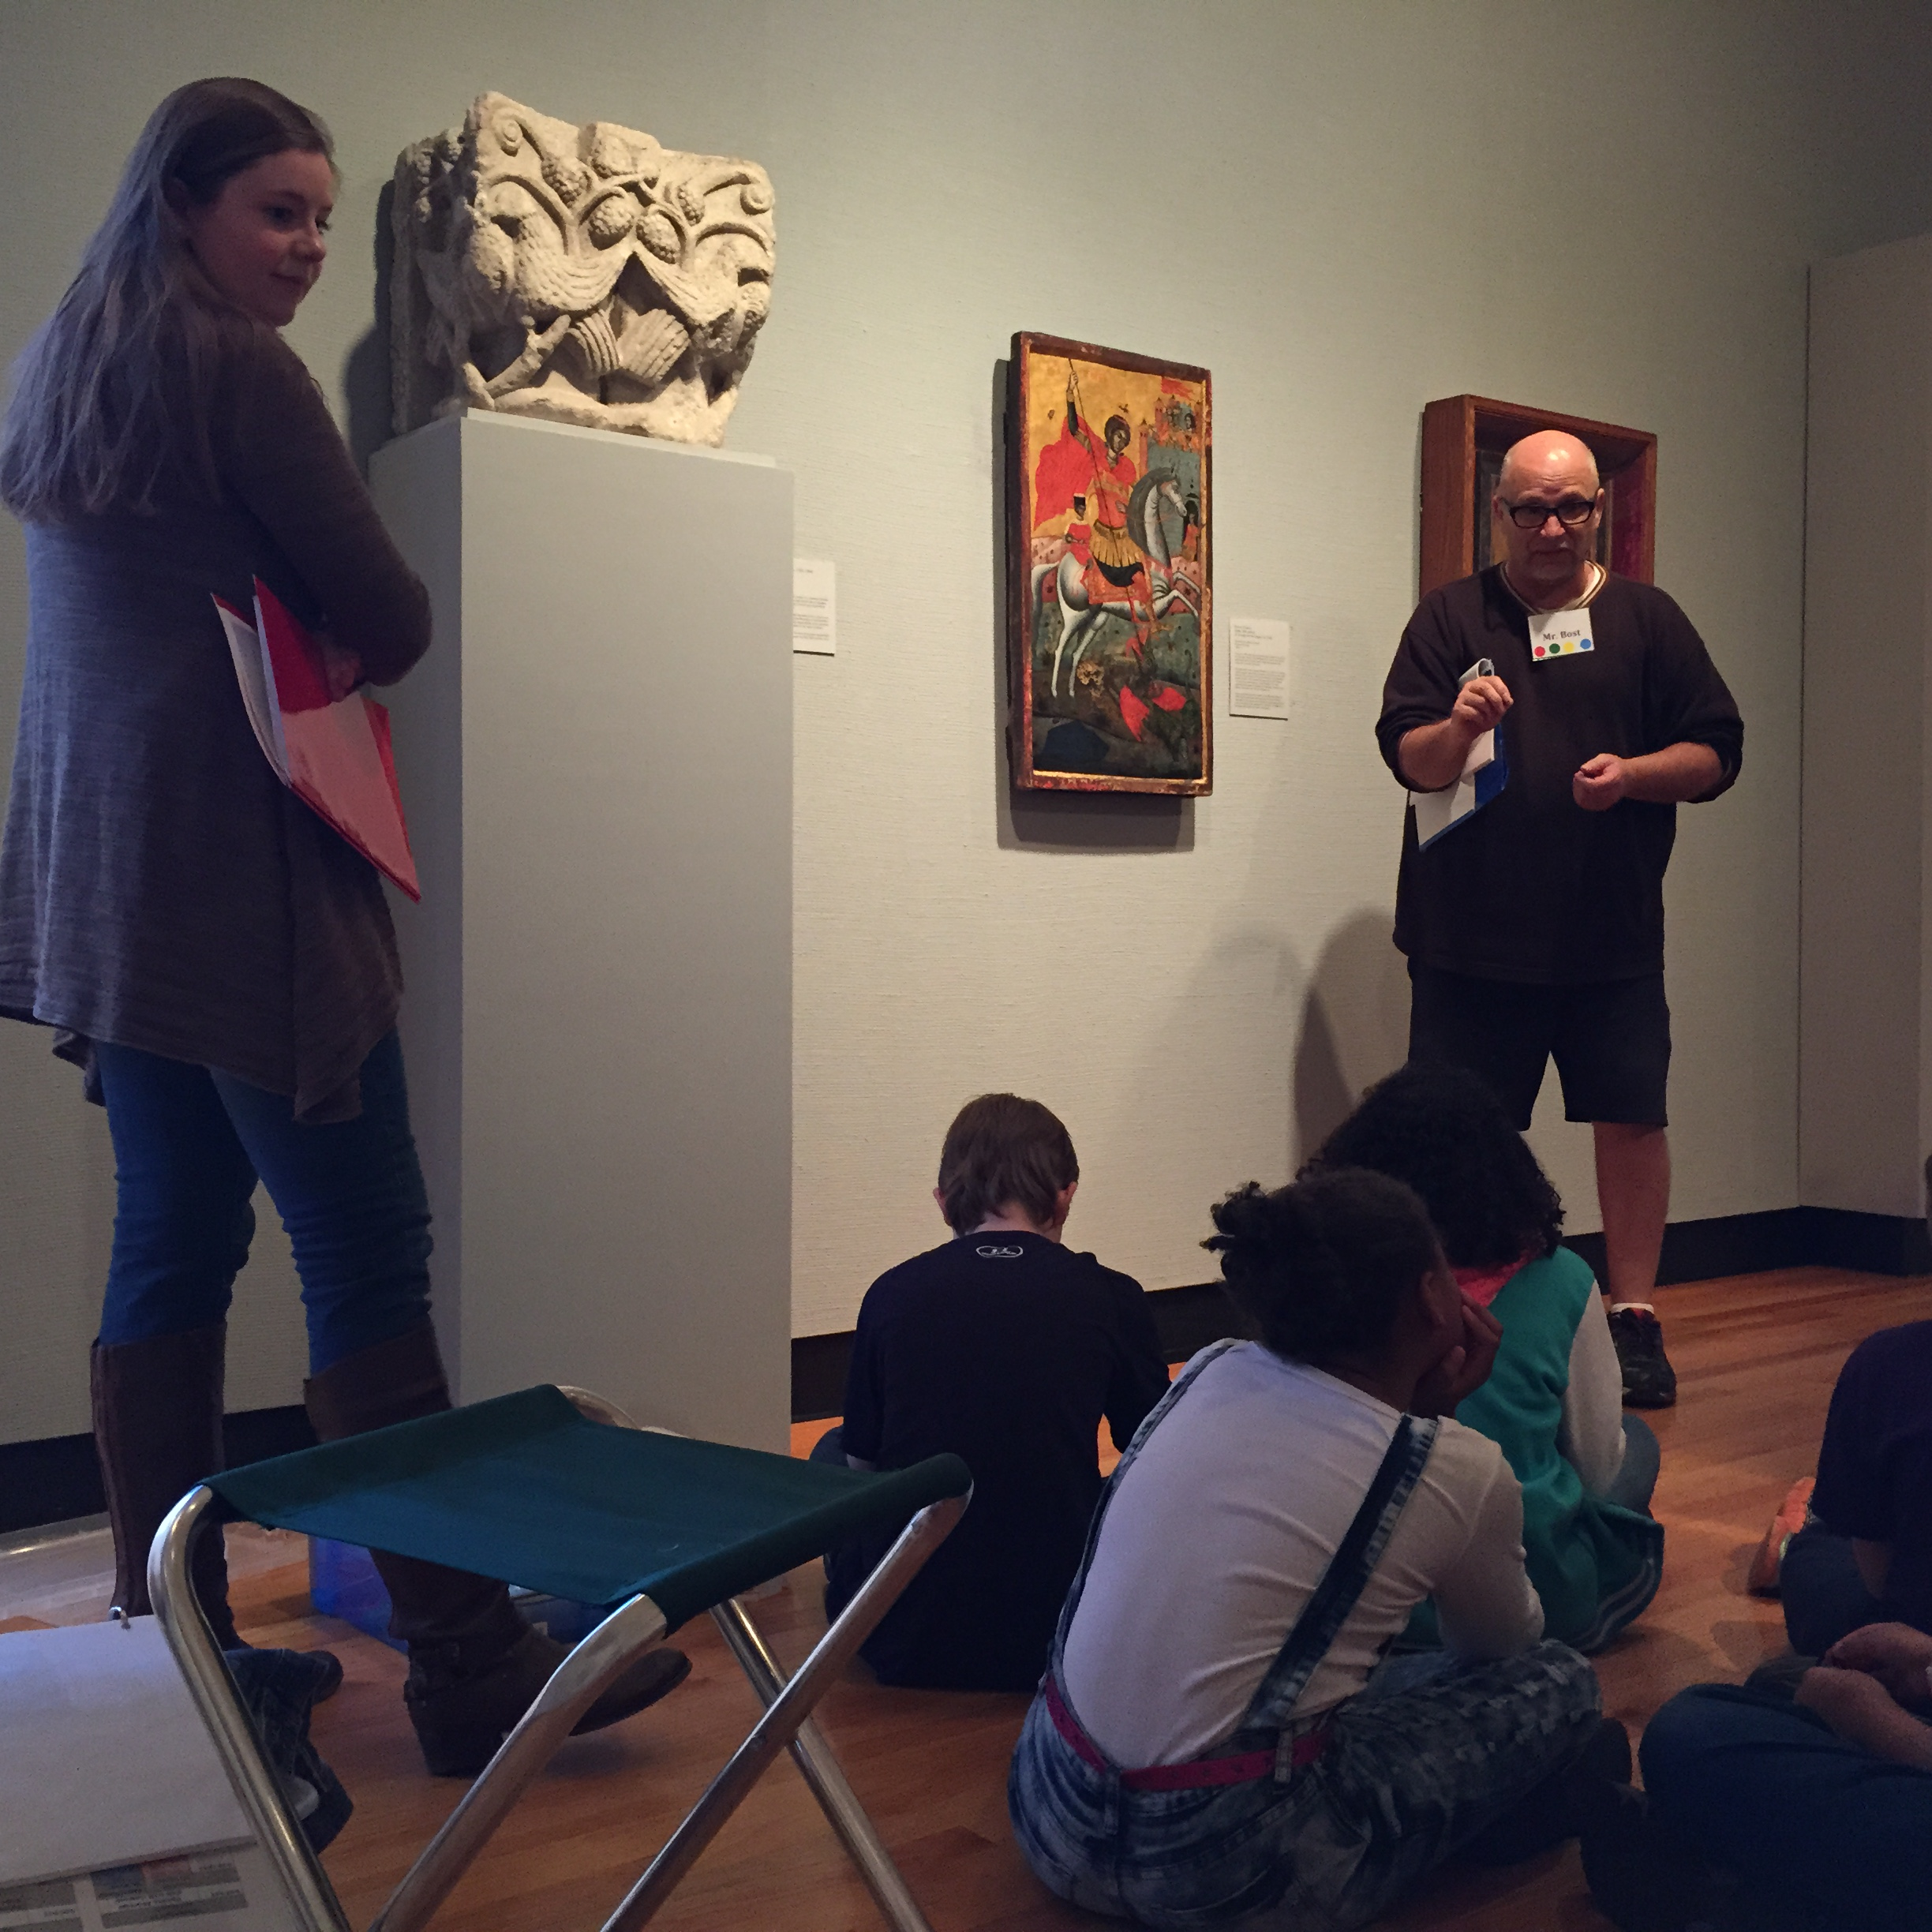 KAMWAM students and teachers learn about art on display in the Trees Gallery at Krannert Art Museum